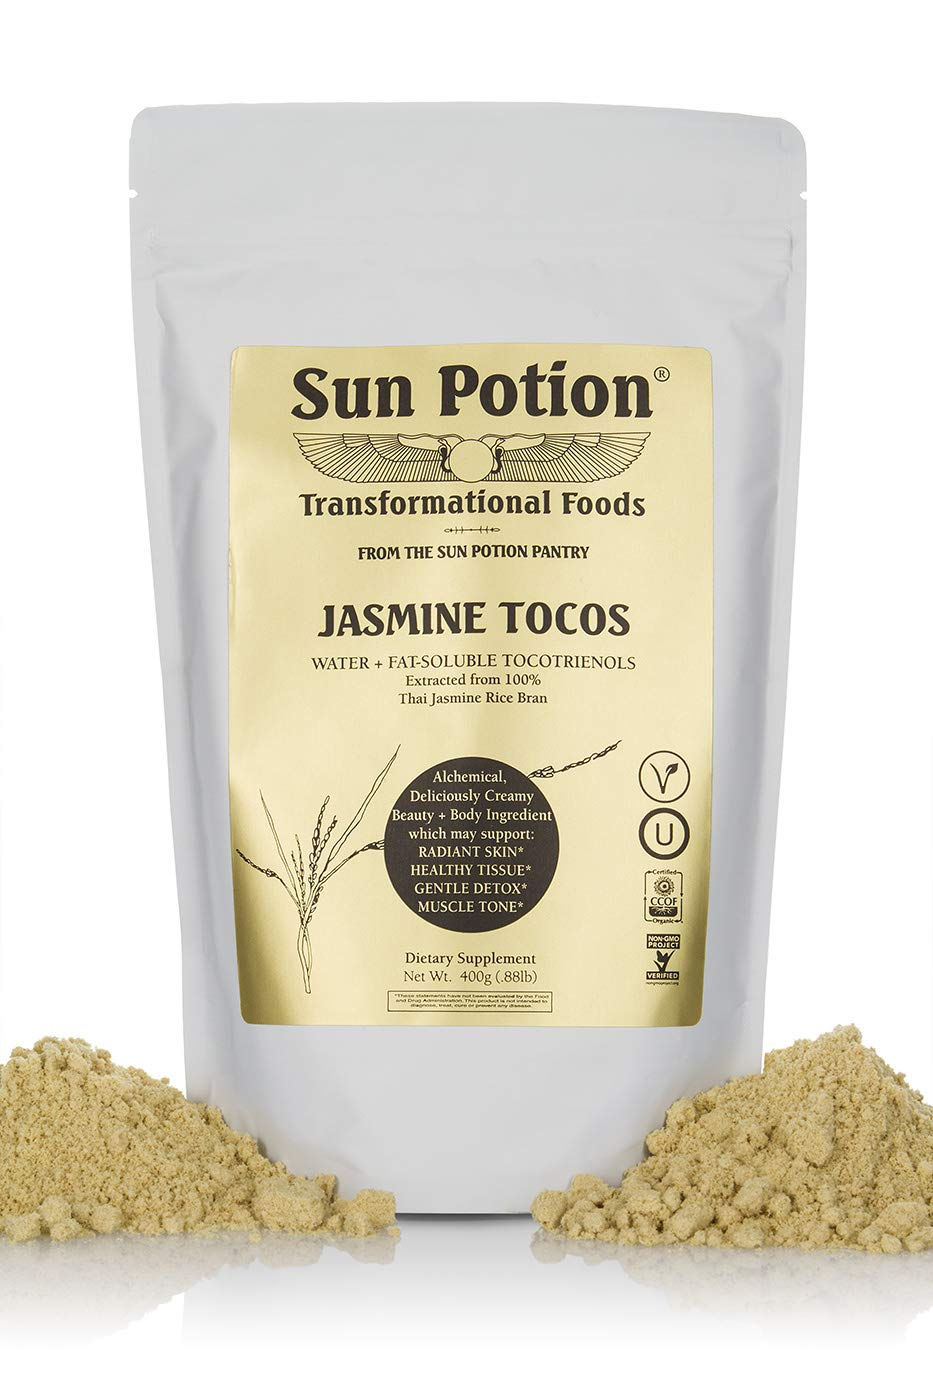 Jasmine TOCOS Powder 400g by Sun Potion - Organic Rice Bran Solubles - Tocotrienols Ultimate Superfood High in Vitamin E Promotes Healthy Skin Care Connective Tissue and Muscle - Raw, Pure, Non-GMO by Sun Potion (Image #1)